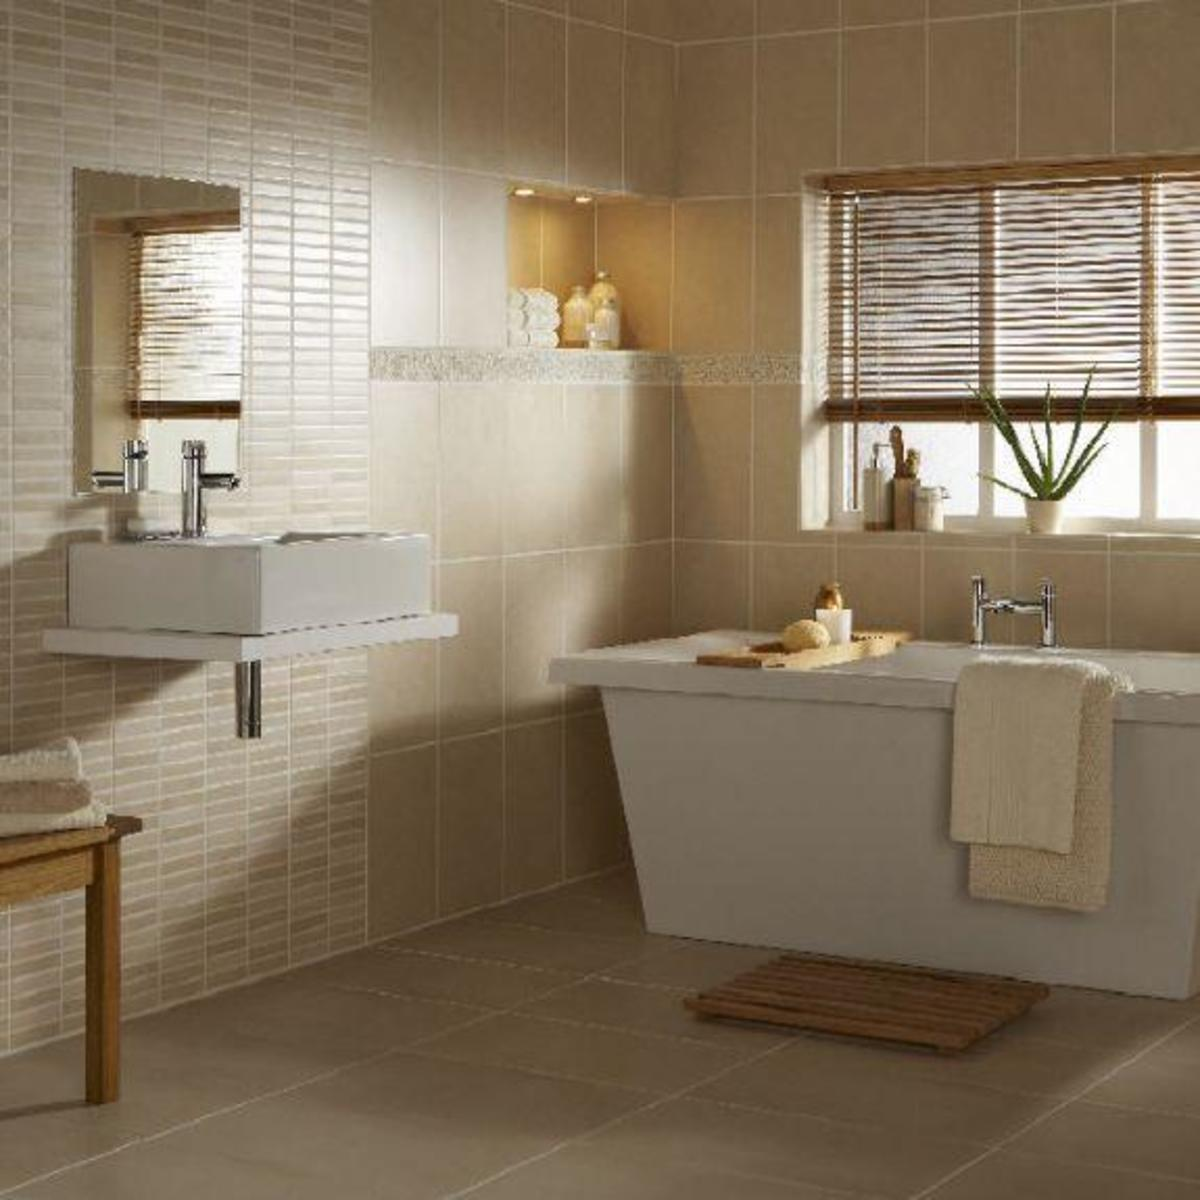 Bathroom Tiles Beige wall & floor tiles, should they match? | hubpages